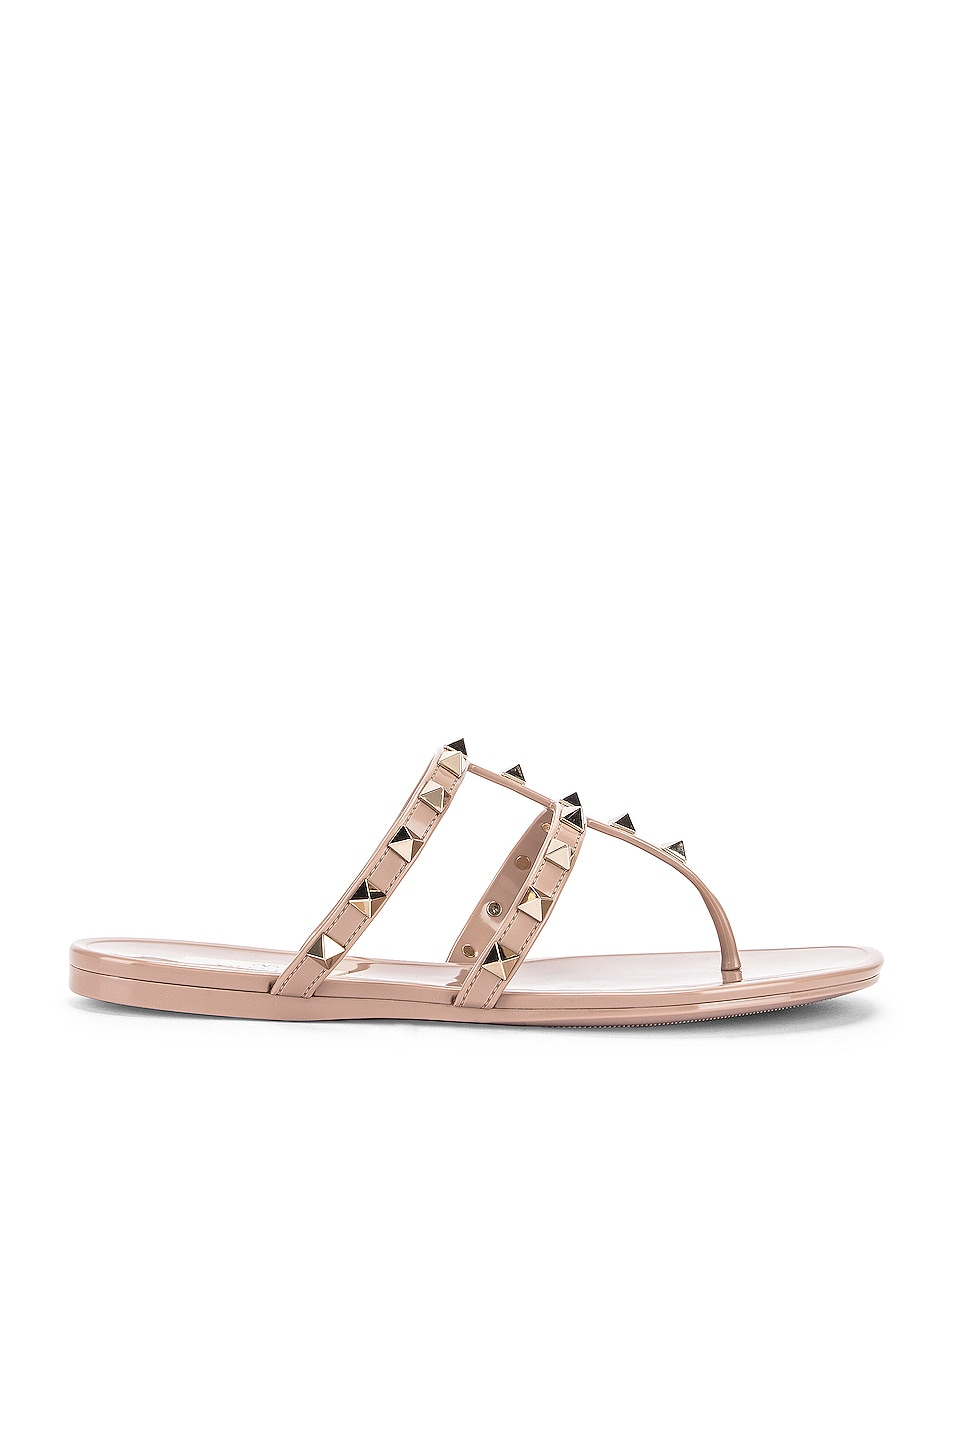 Image 1 of Valentino Garavani Rockstud Summer Thong Sandals in Poudre